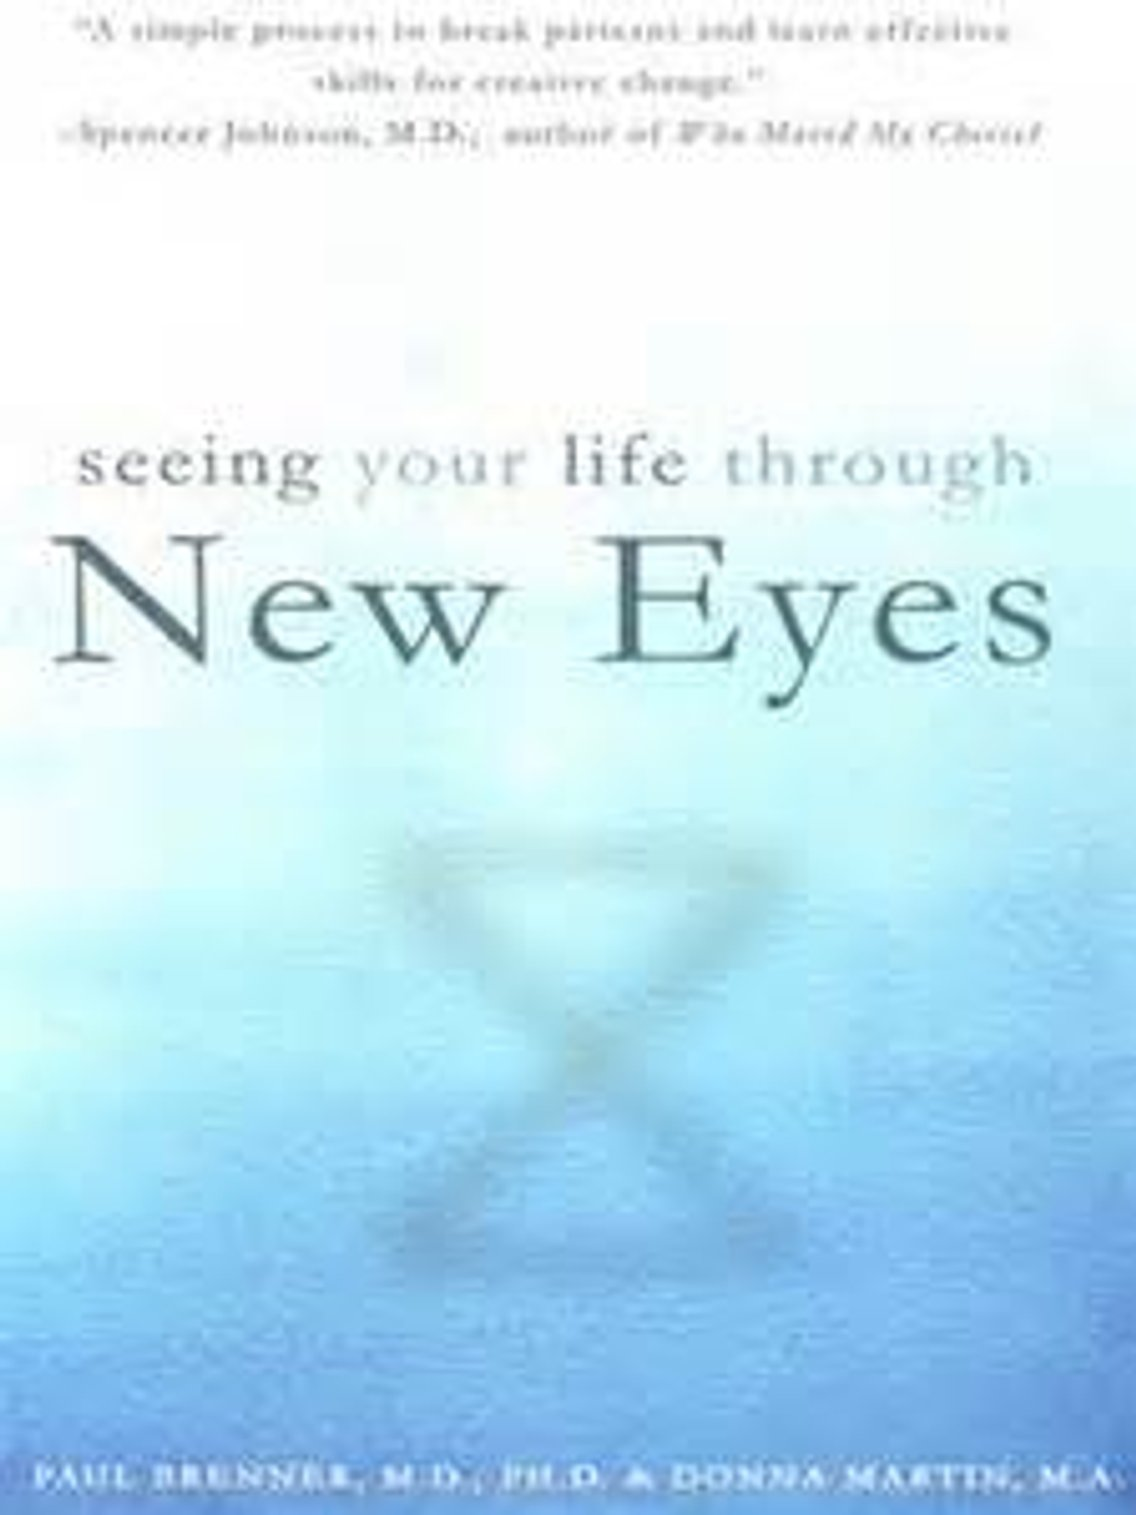 New Life Needs New Eyes #1 - Cover Image